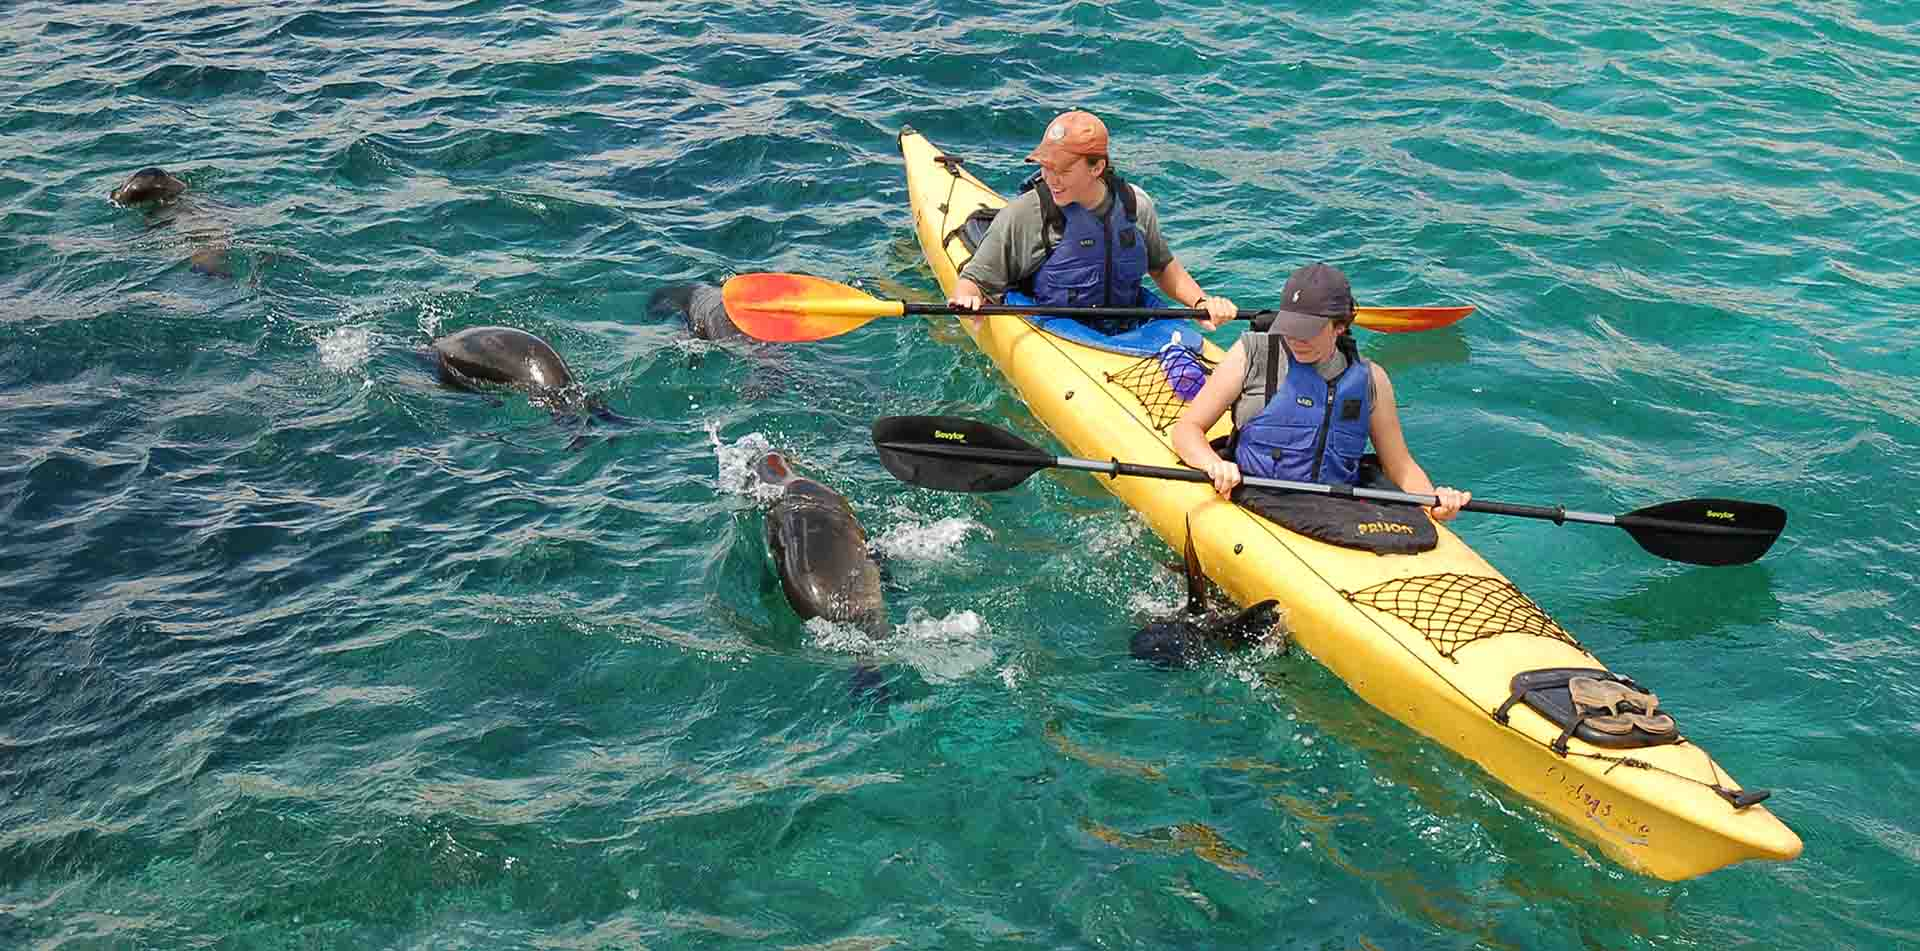 South America Ecuador Galapagos Islands beautiful wild life Darwin kayaking with sea pups eco friendly travel -luxury vacation destinations